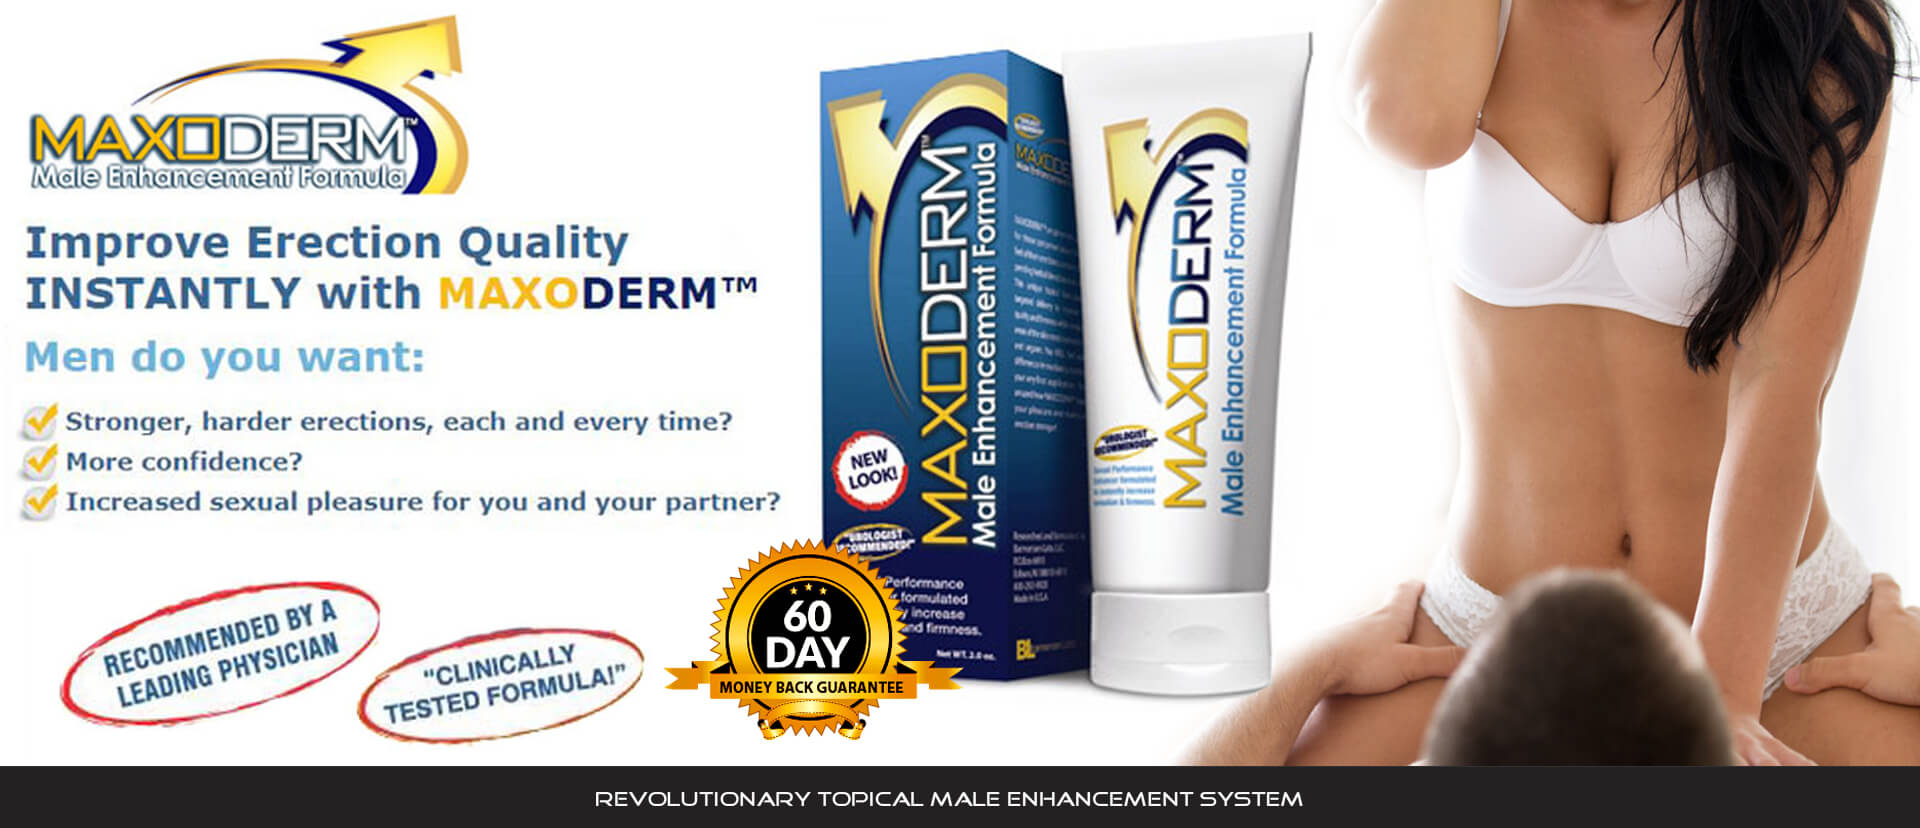 Maxoderm Review Best Male Enhancement Cream Increase